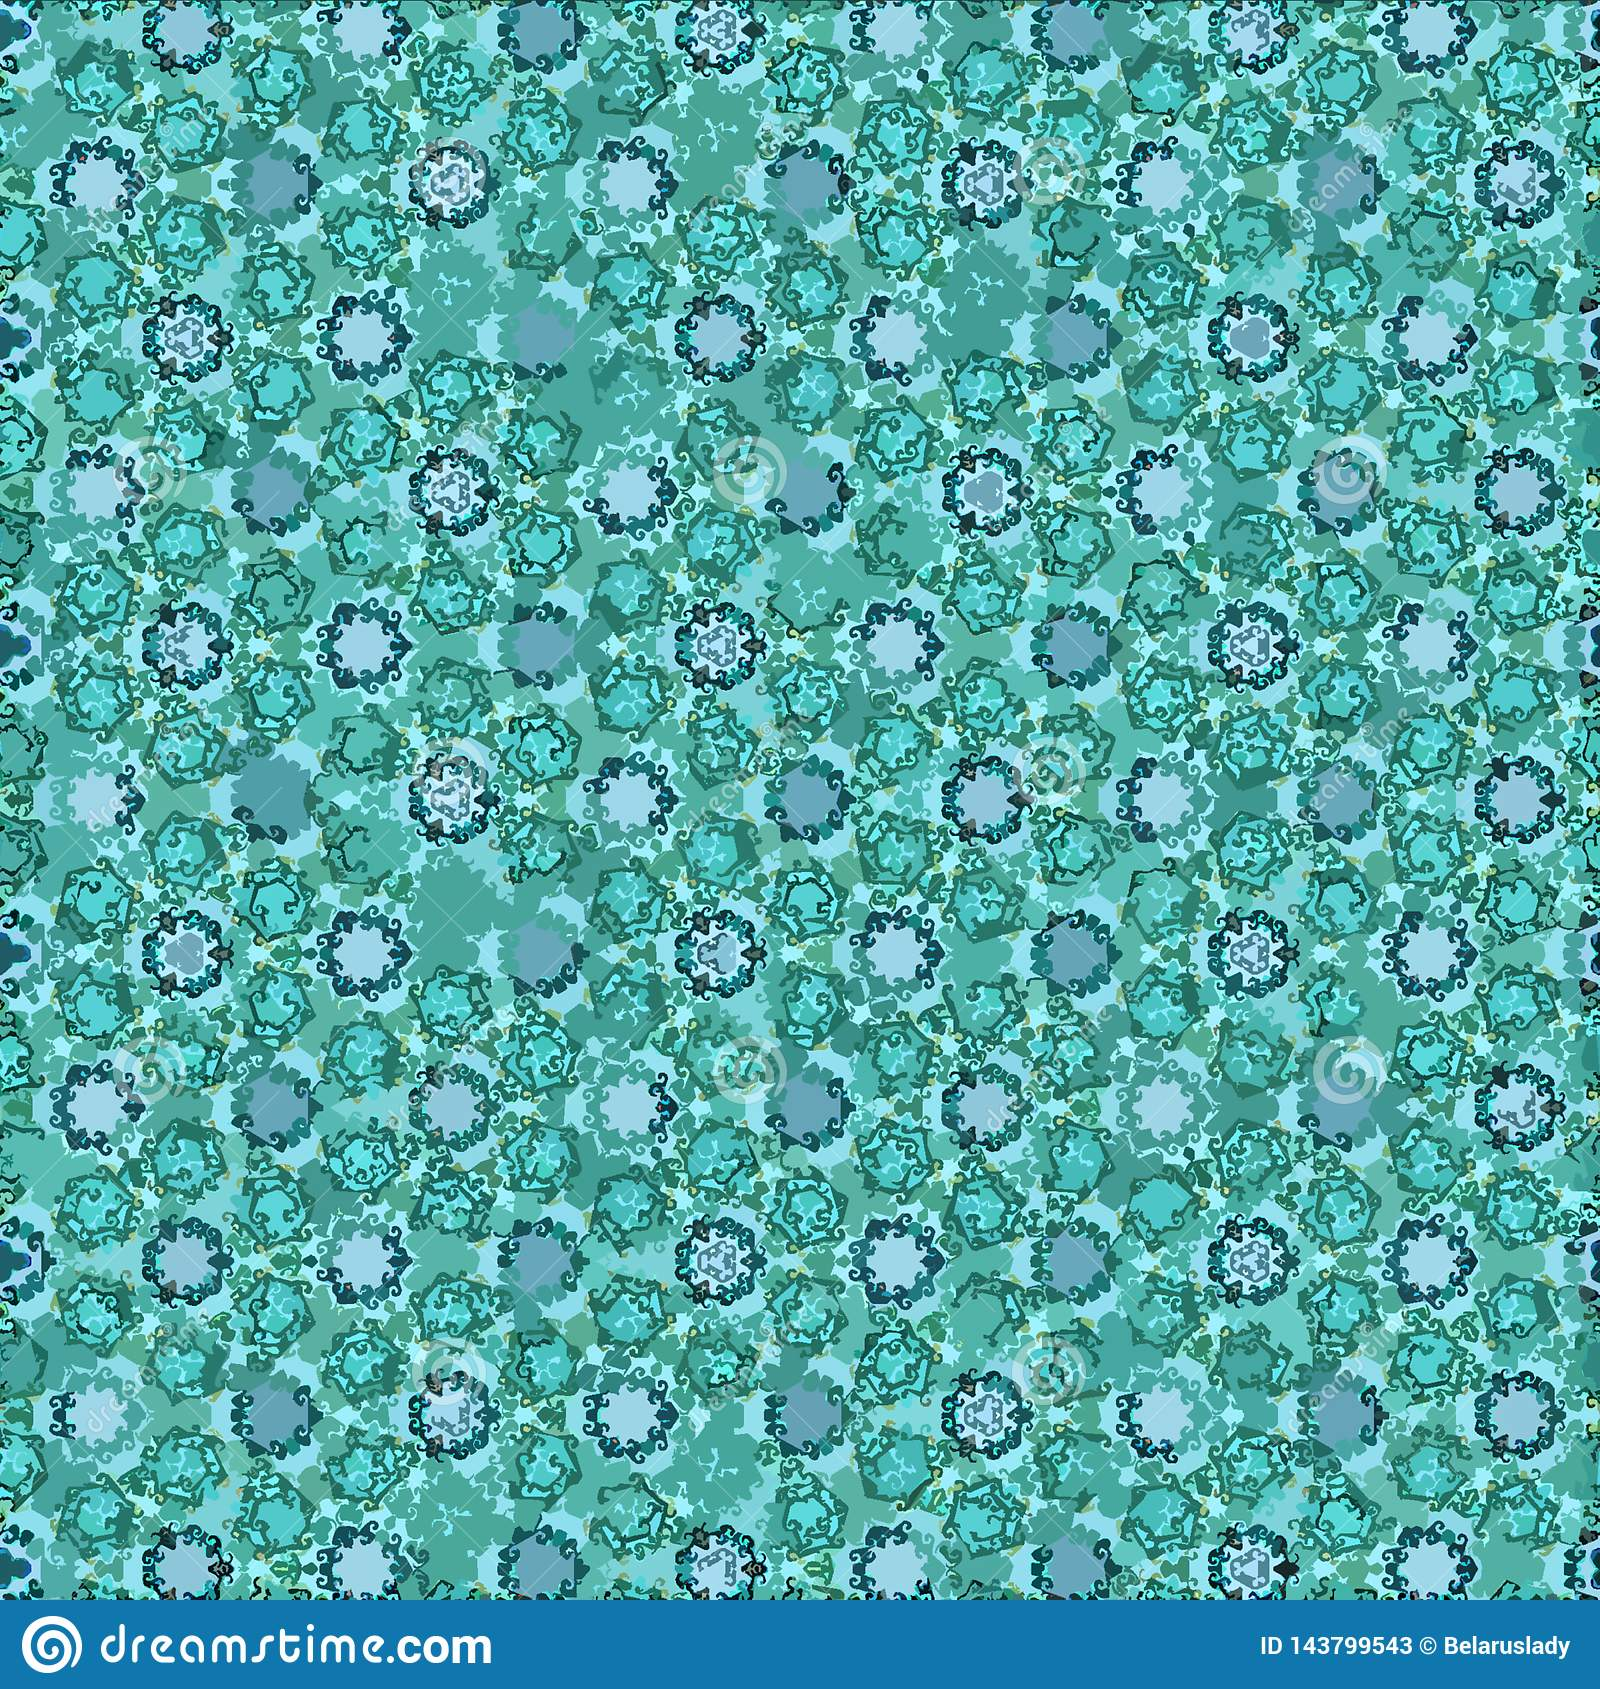 The Texture Of Teal And Turquoise: Geometric Decorative Continuous Texture In Teal Color